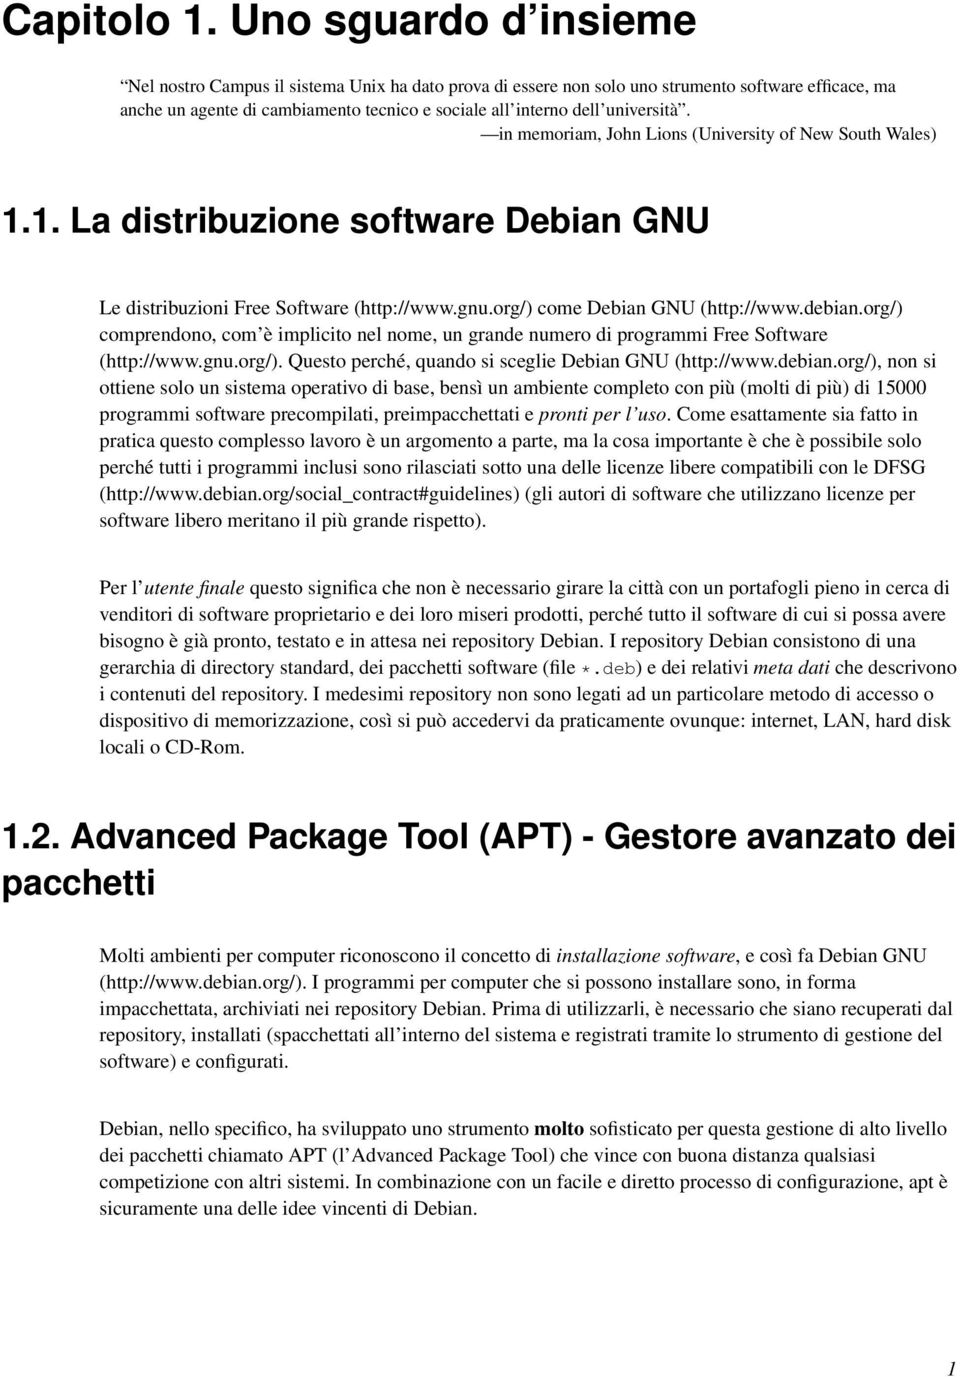 università. in memoriam, John Lions (University of New South Wales) 1.1. La distribuzione software Debian GNU Le distribuzioni Free Software (http://www.gnu.org/) come Debian GNU (http://www.debian.